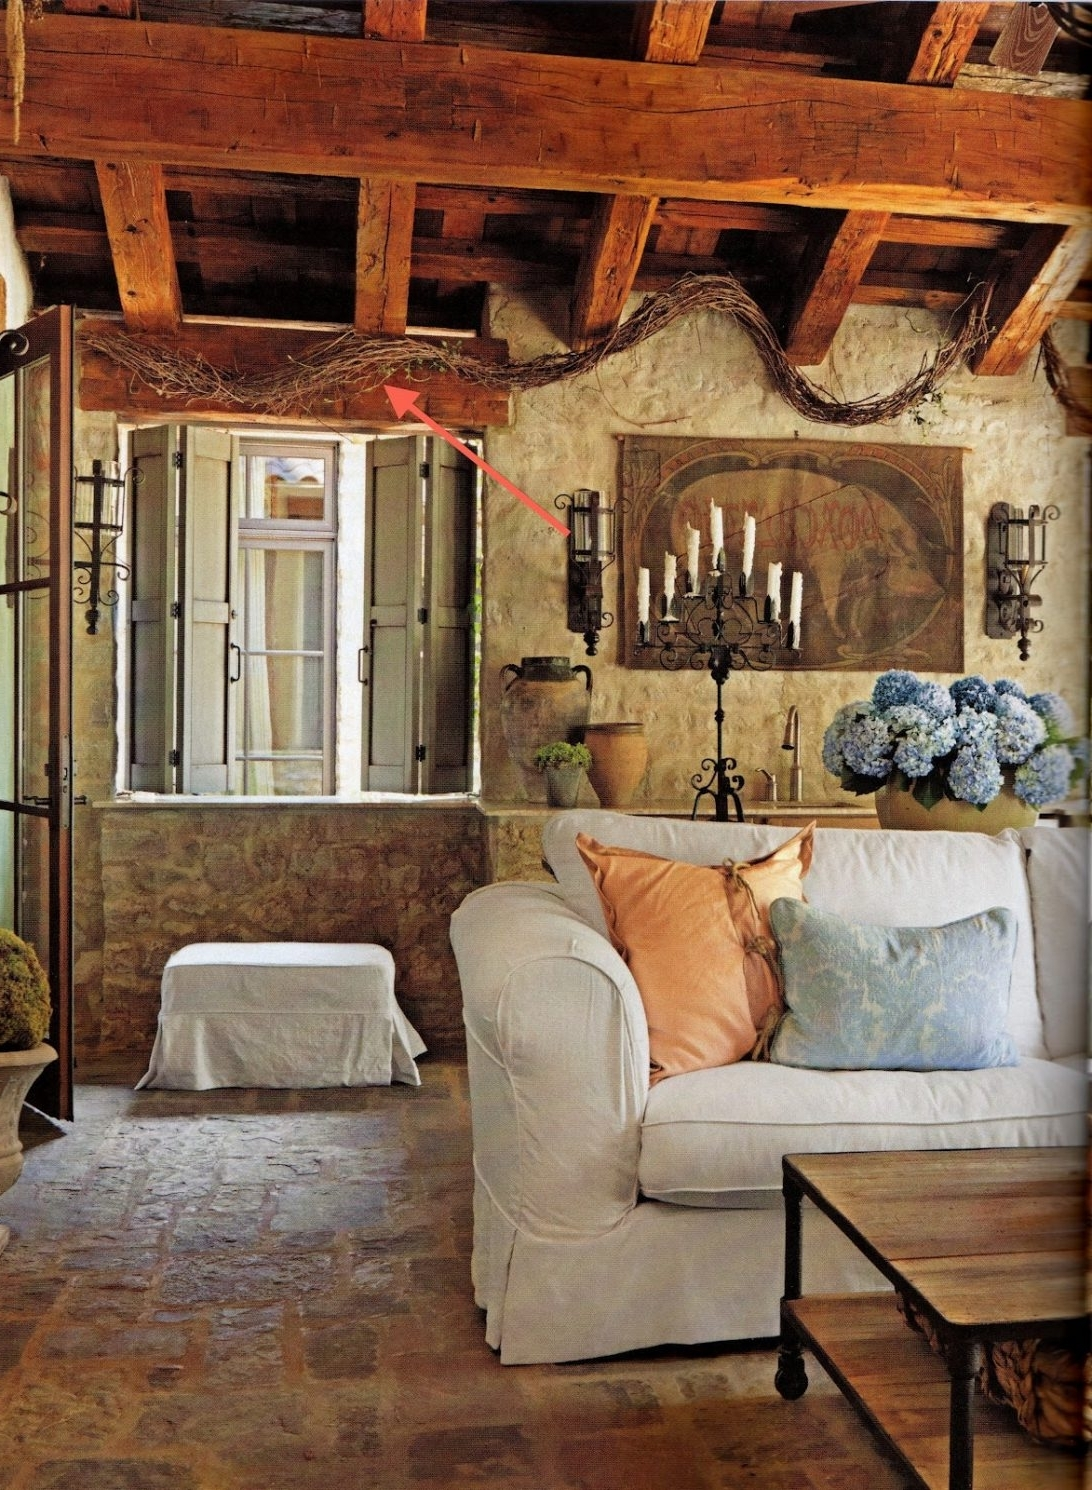 Tuscan Style Floor Lamps Interior Cool Living Room Decoration Ideas Within Current Tuscan Table Lamps For Living Room (View 8 of 15)